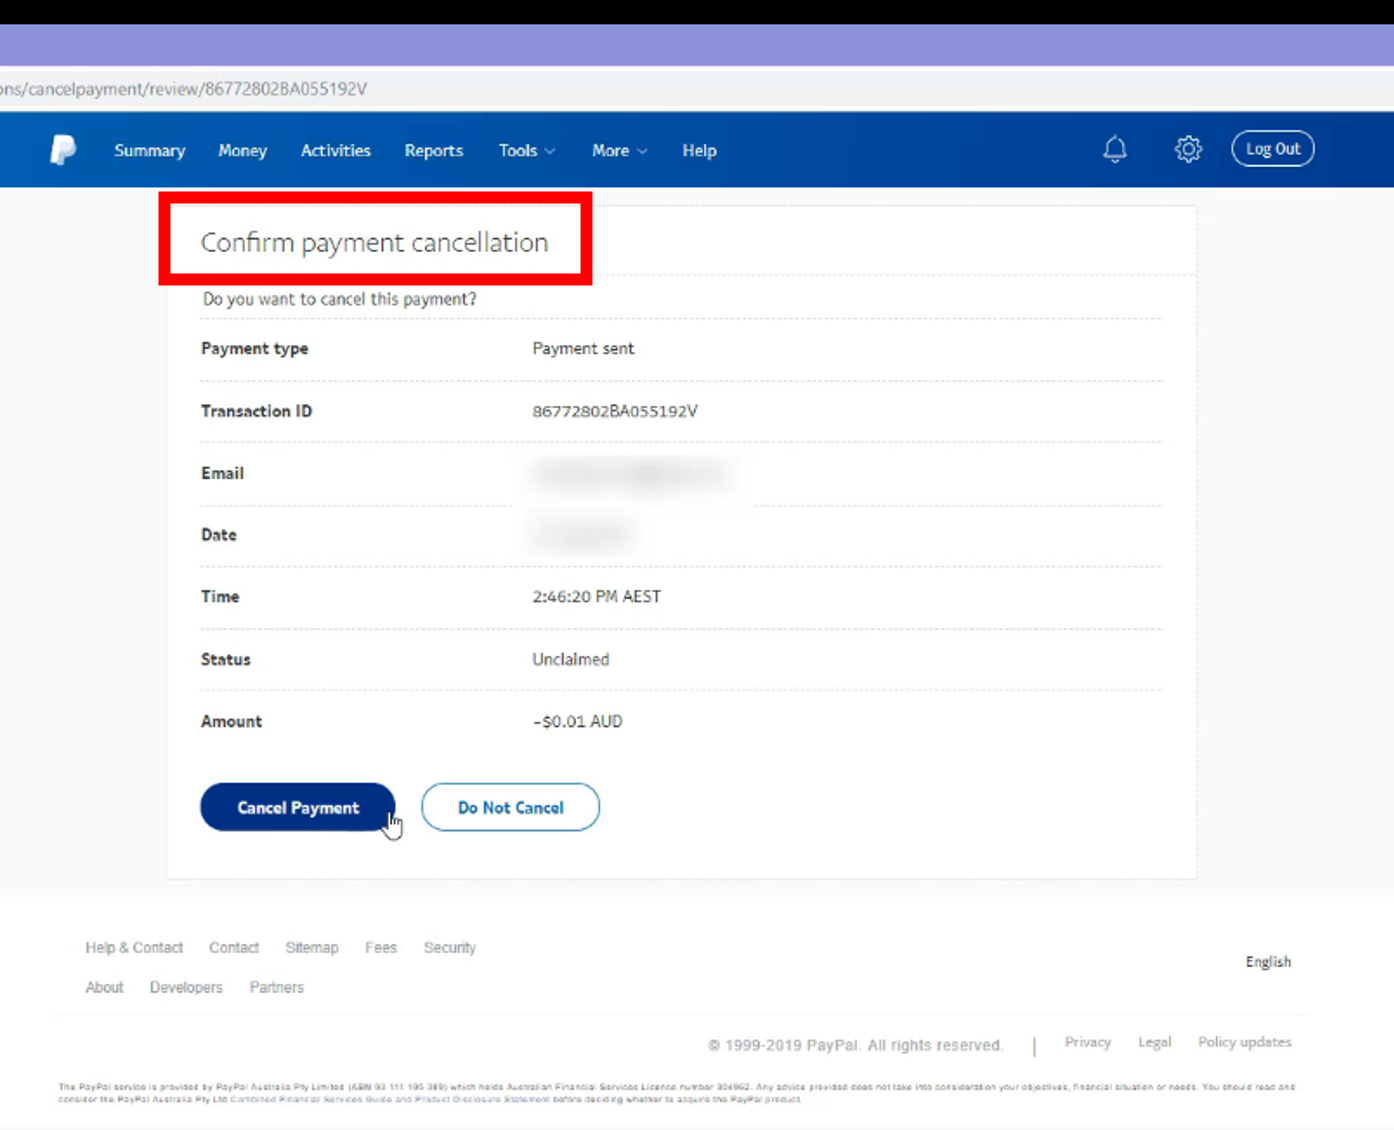 How to Cancel an Unclaimed Paypal Payment?